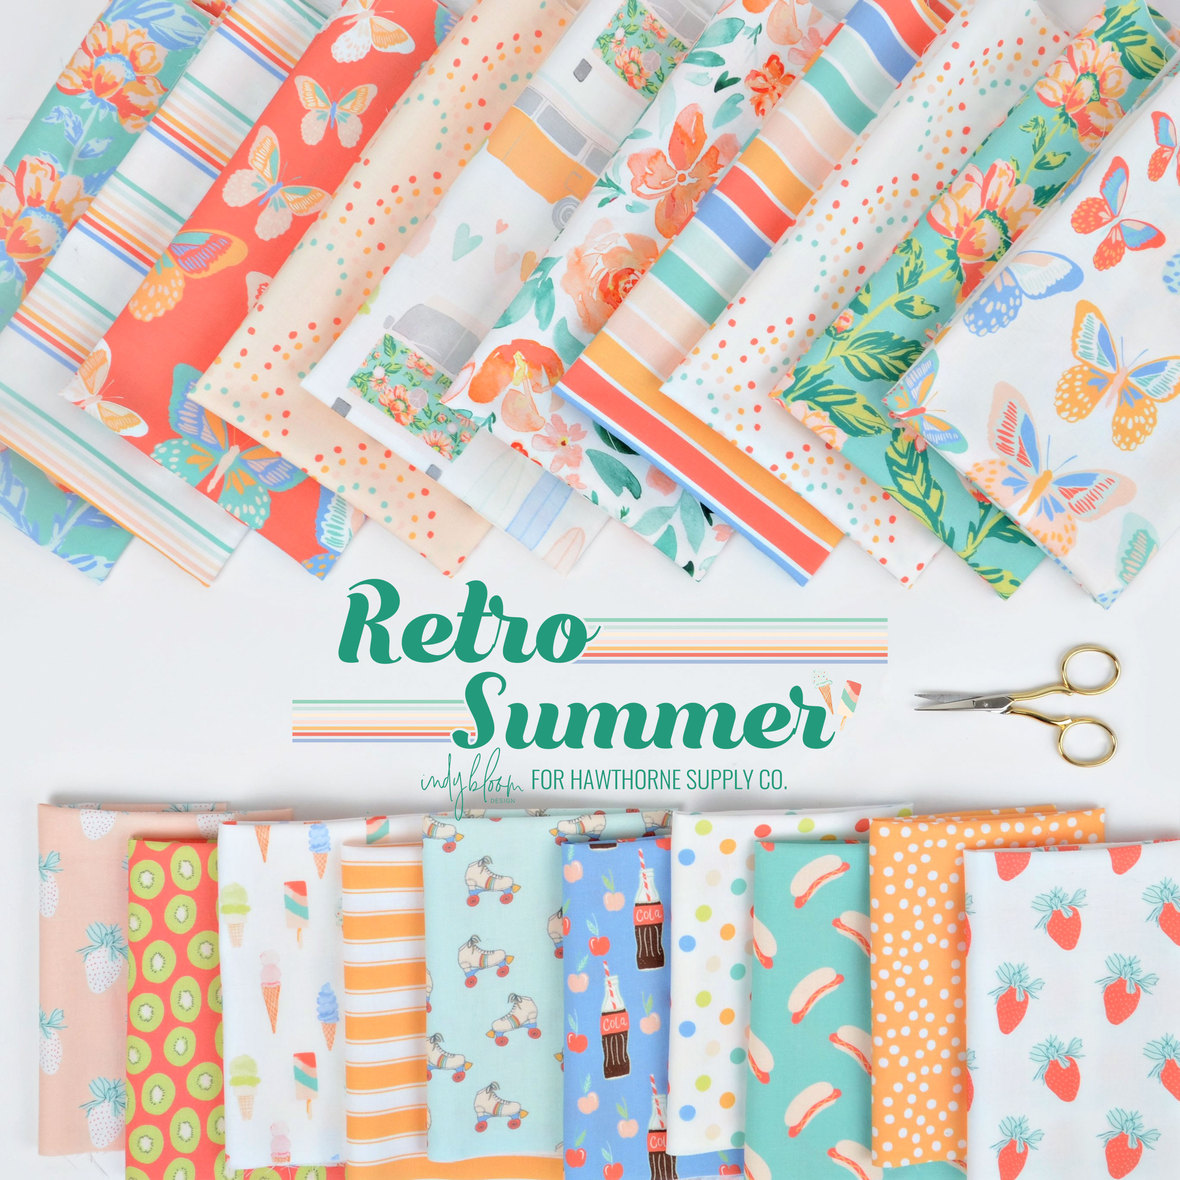 Retro-Summer-Fabric-Indy-Bloom-for-Hawthorne-Supply-Co